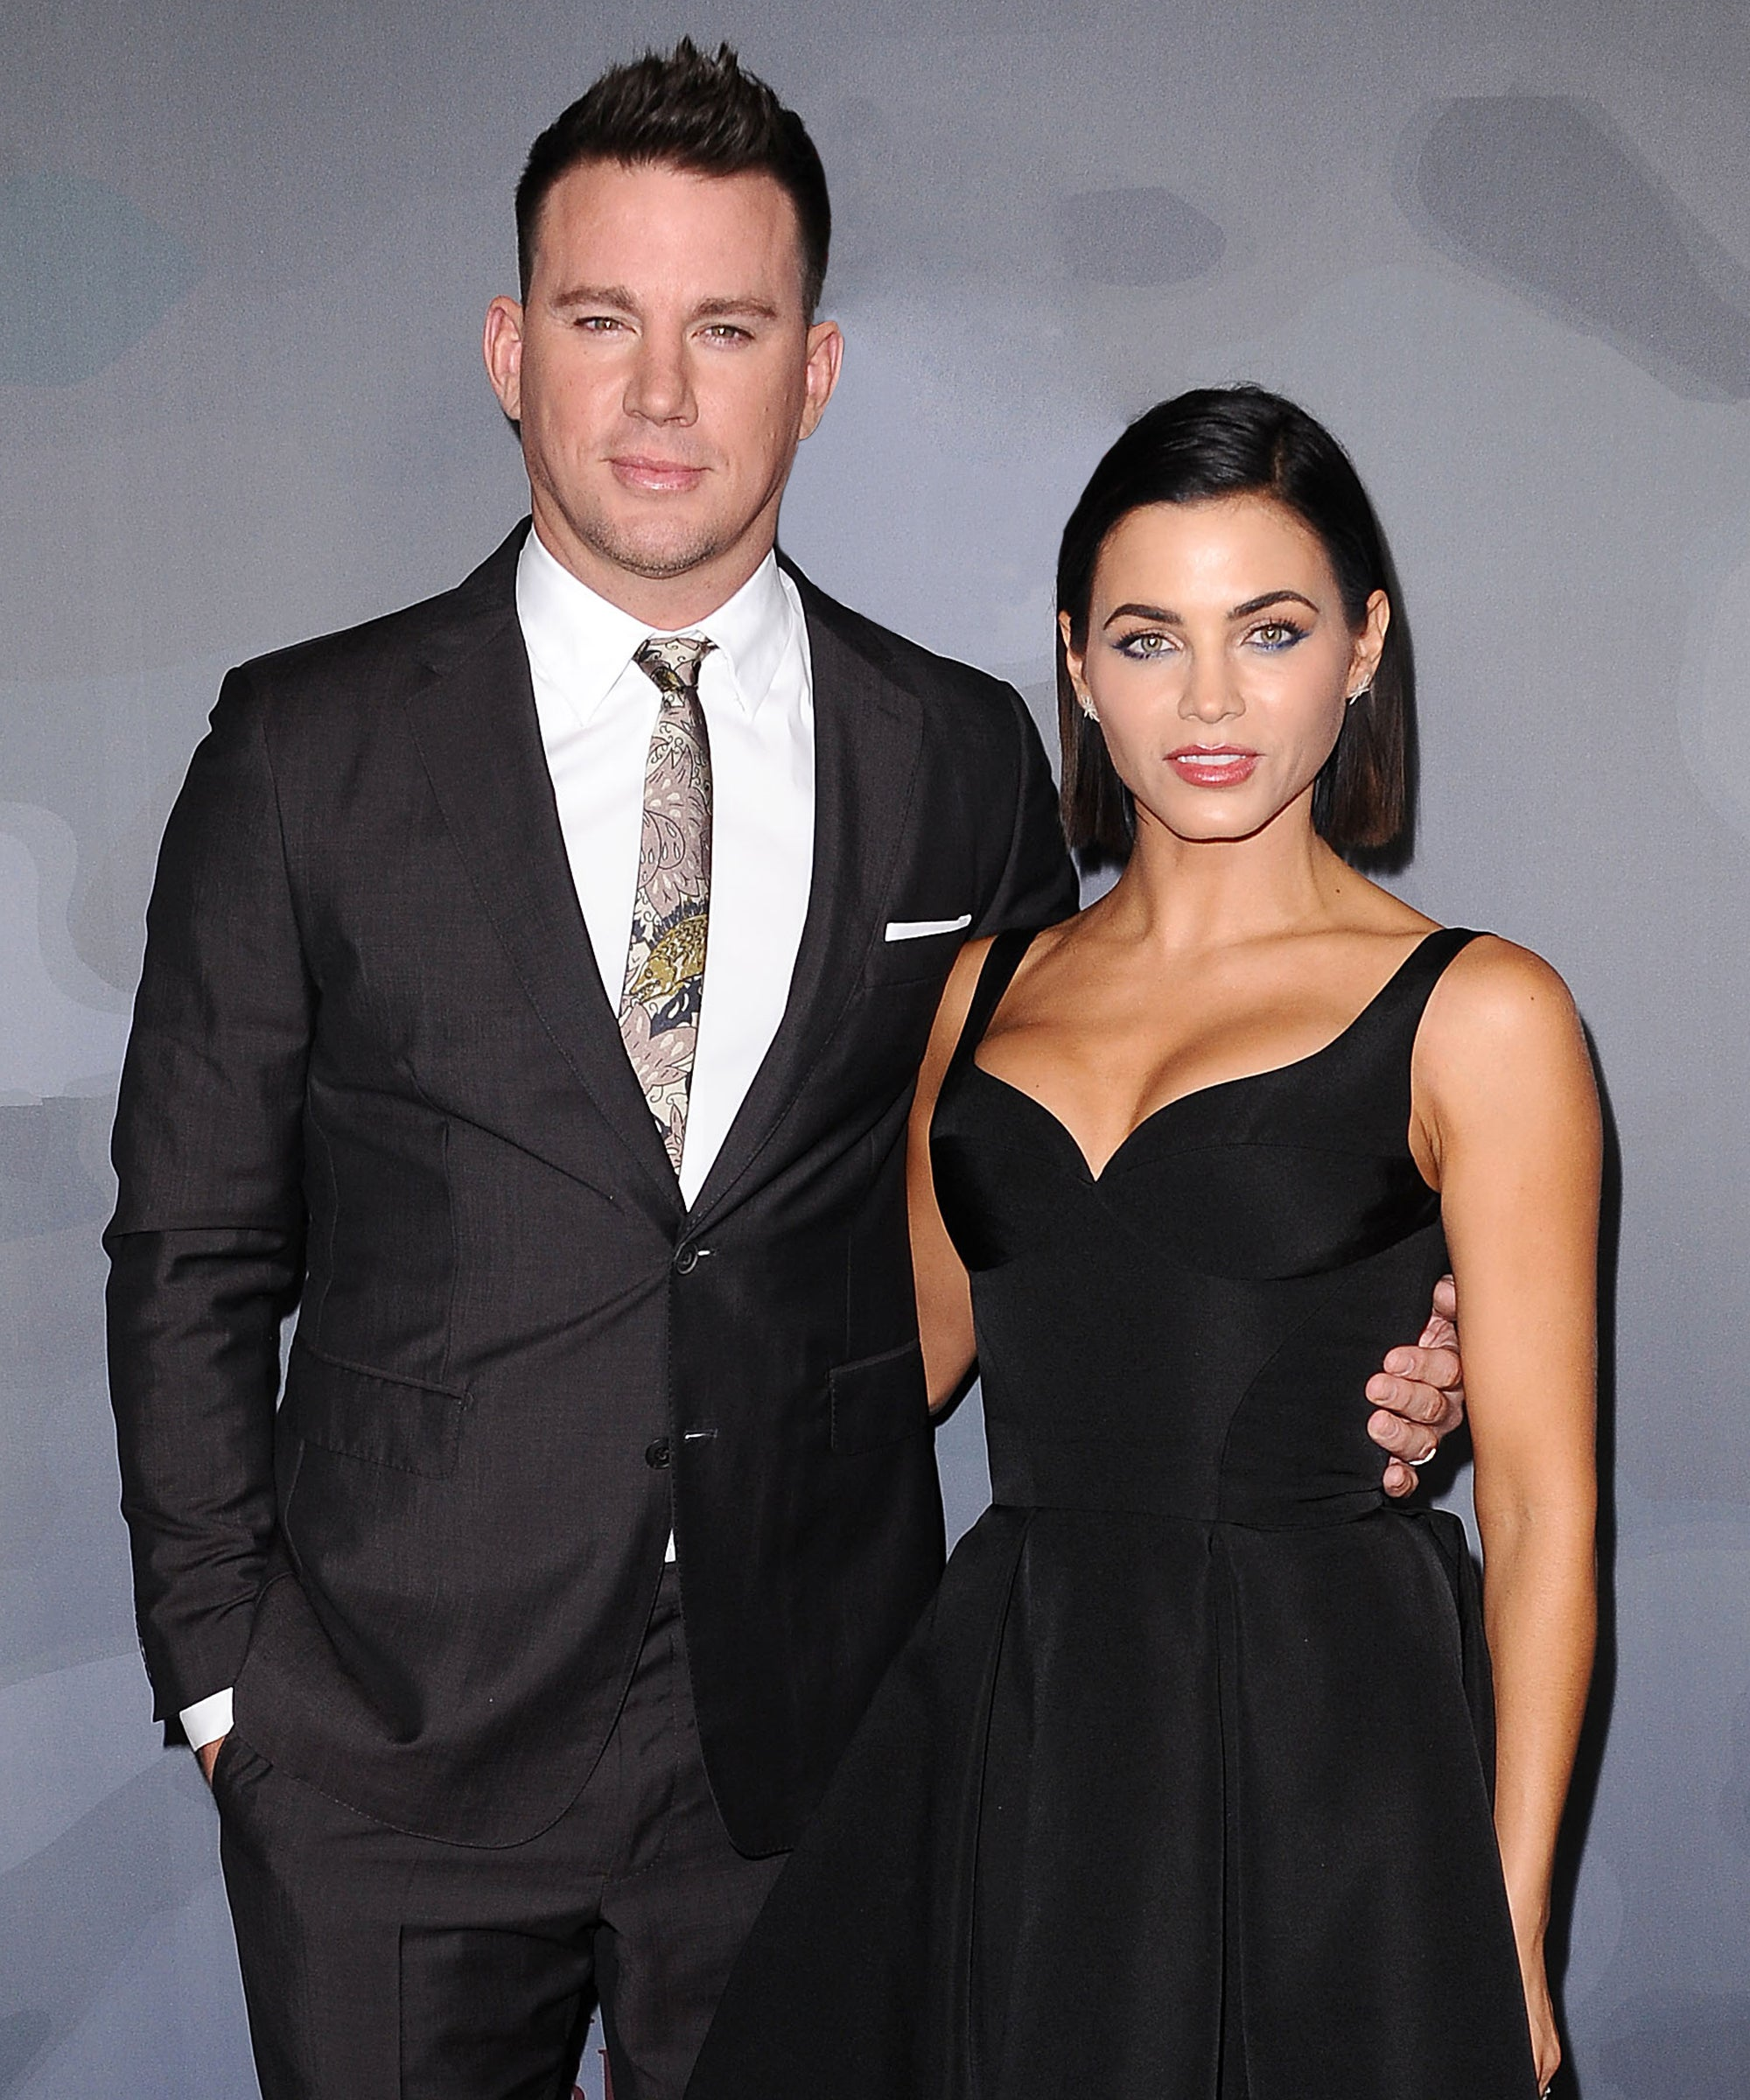 Jenna Dewan Opens Up About Being Blindsided By Channing Tatum Dating In New Book